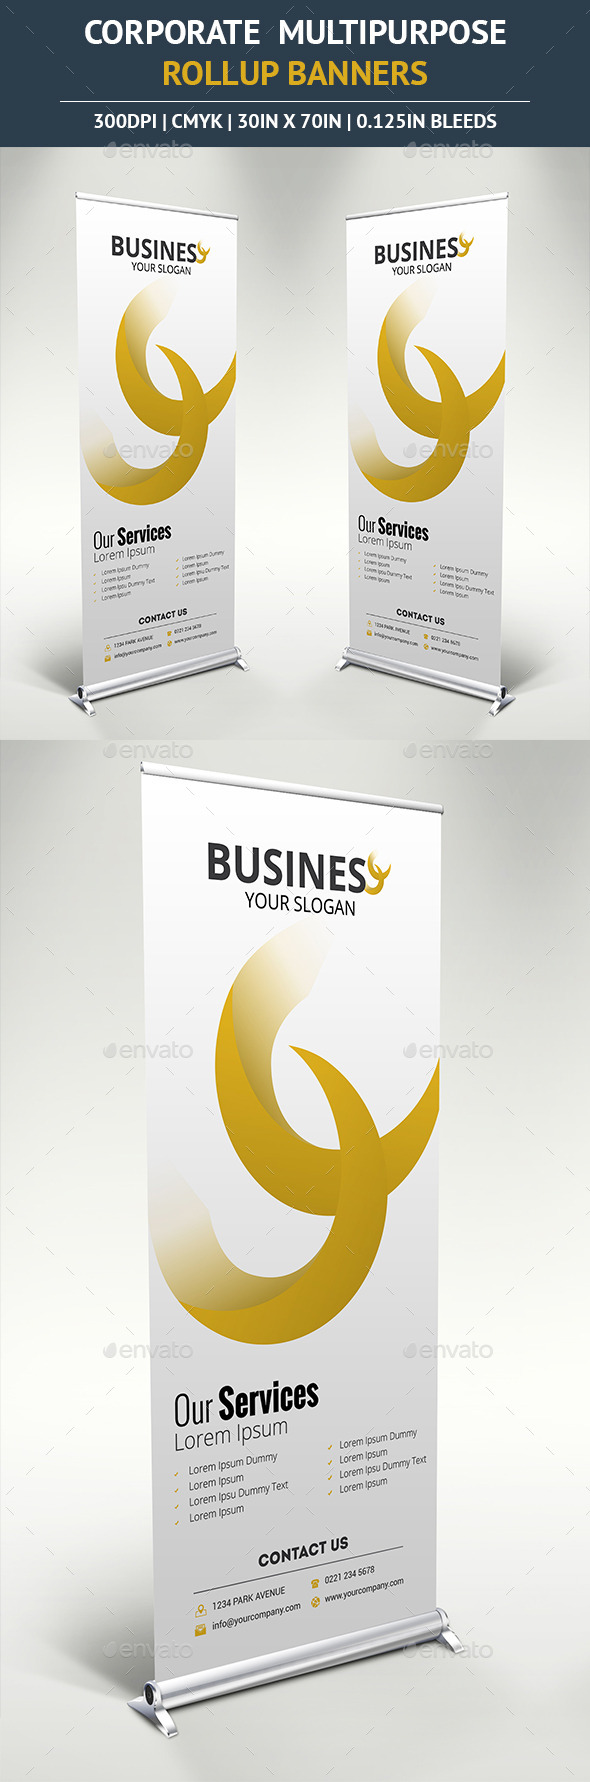 Corporate Rollup Banner vol5 - Signage Print Templates